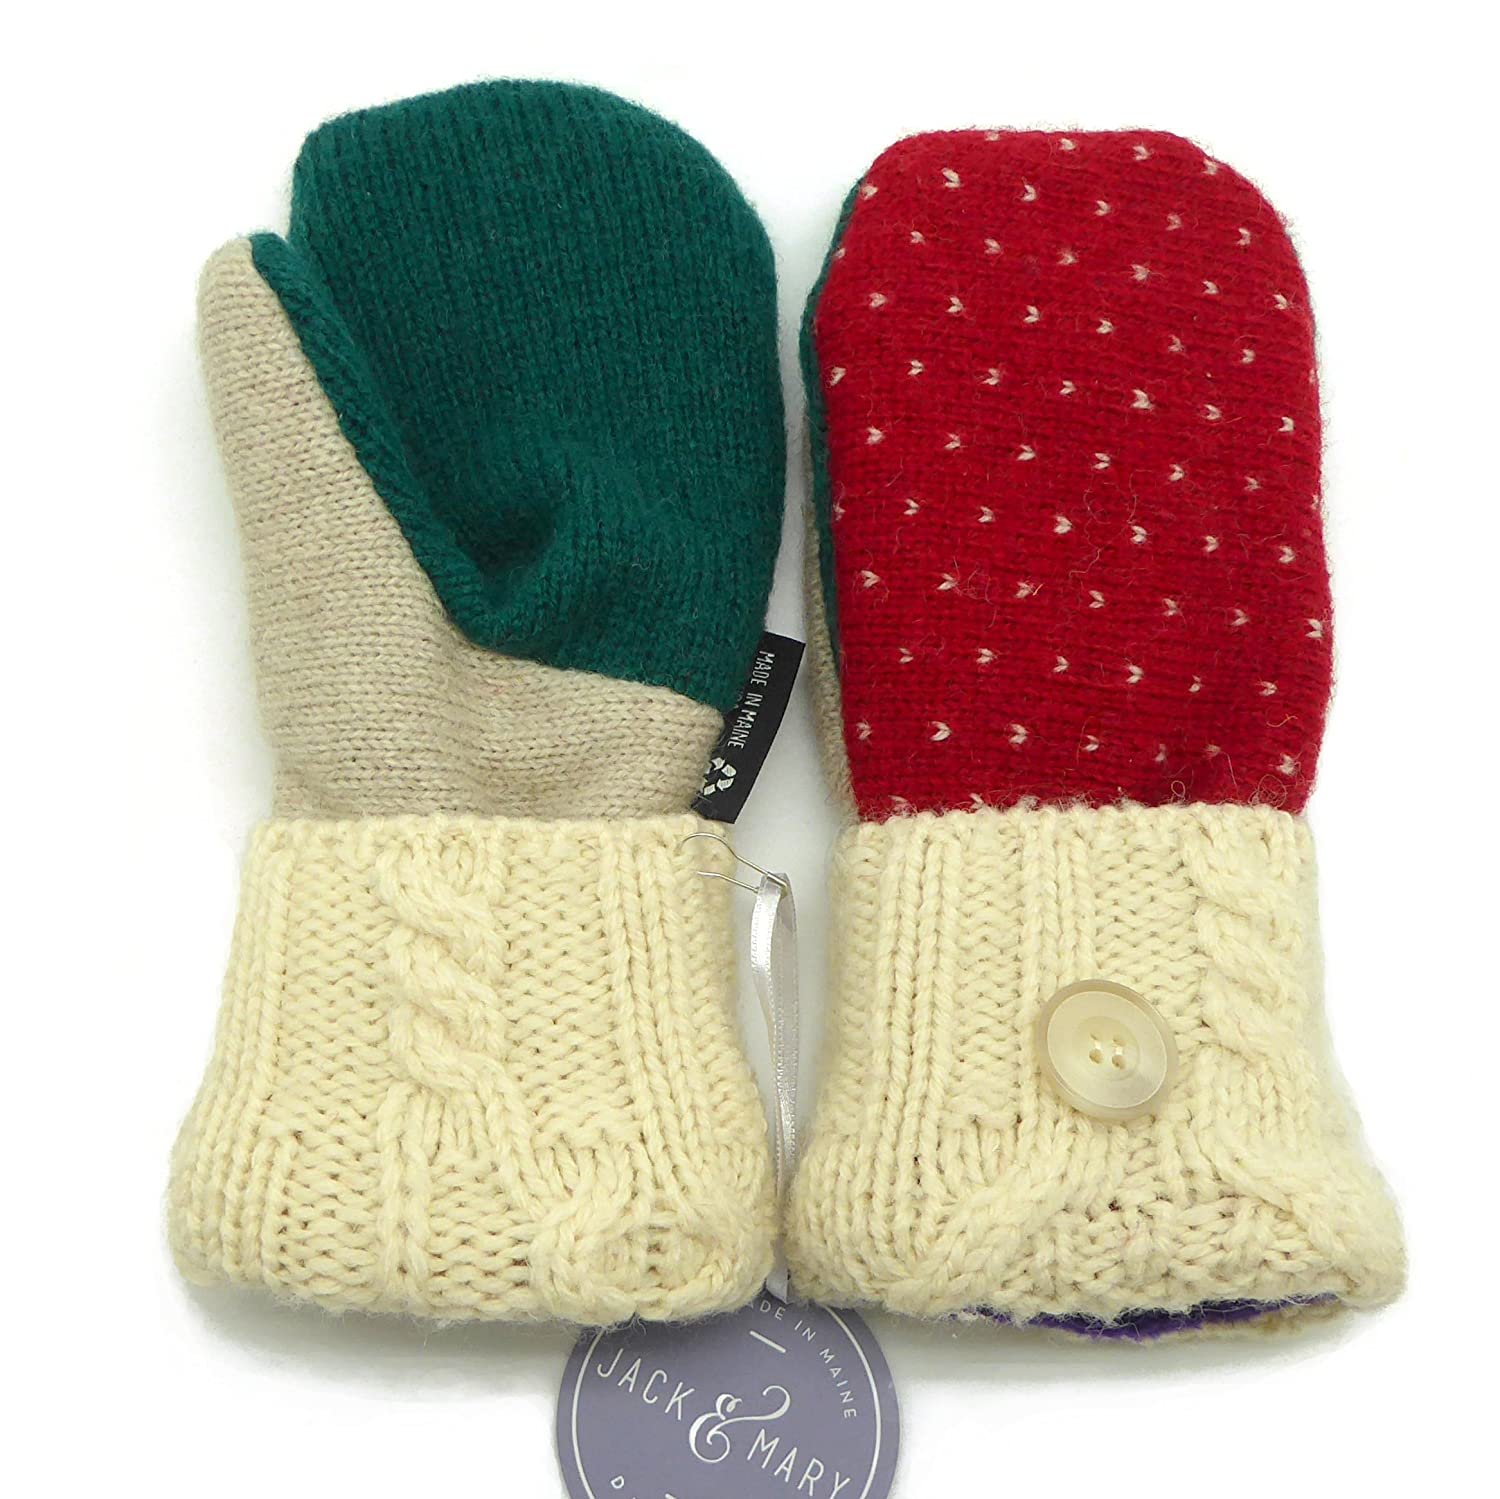 Jack Mary Designs Handmade Womens Fleece Lined Wool Mittens Made